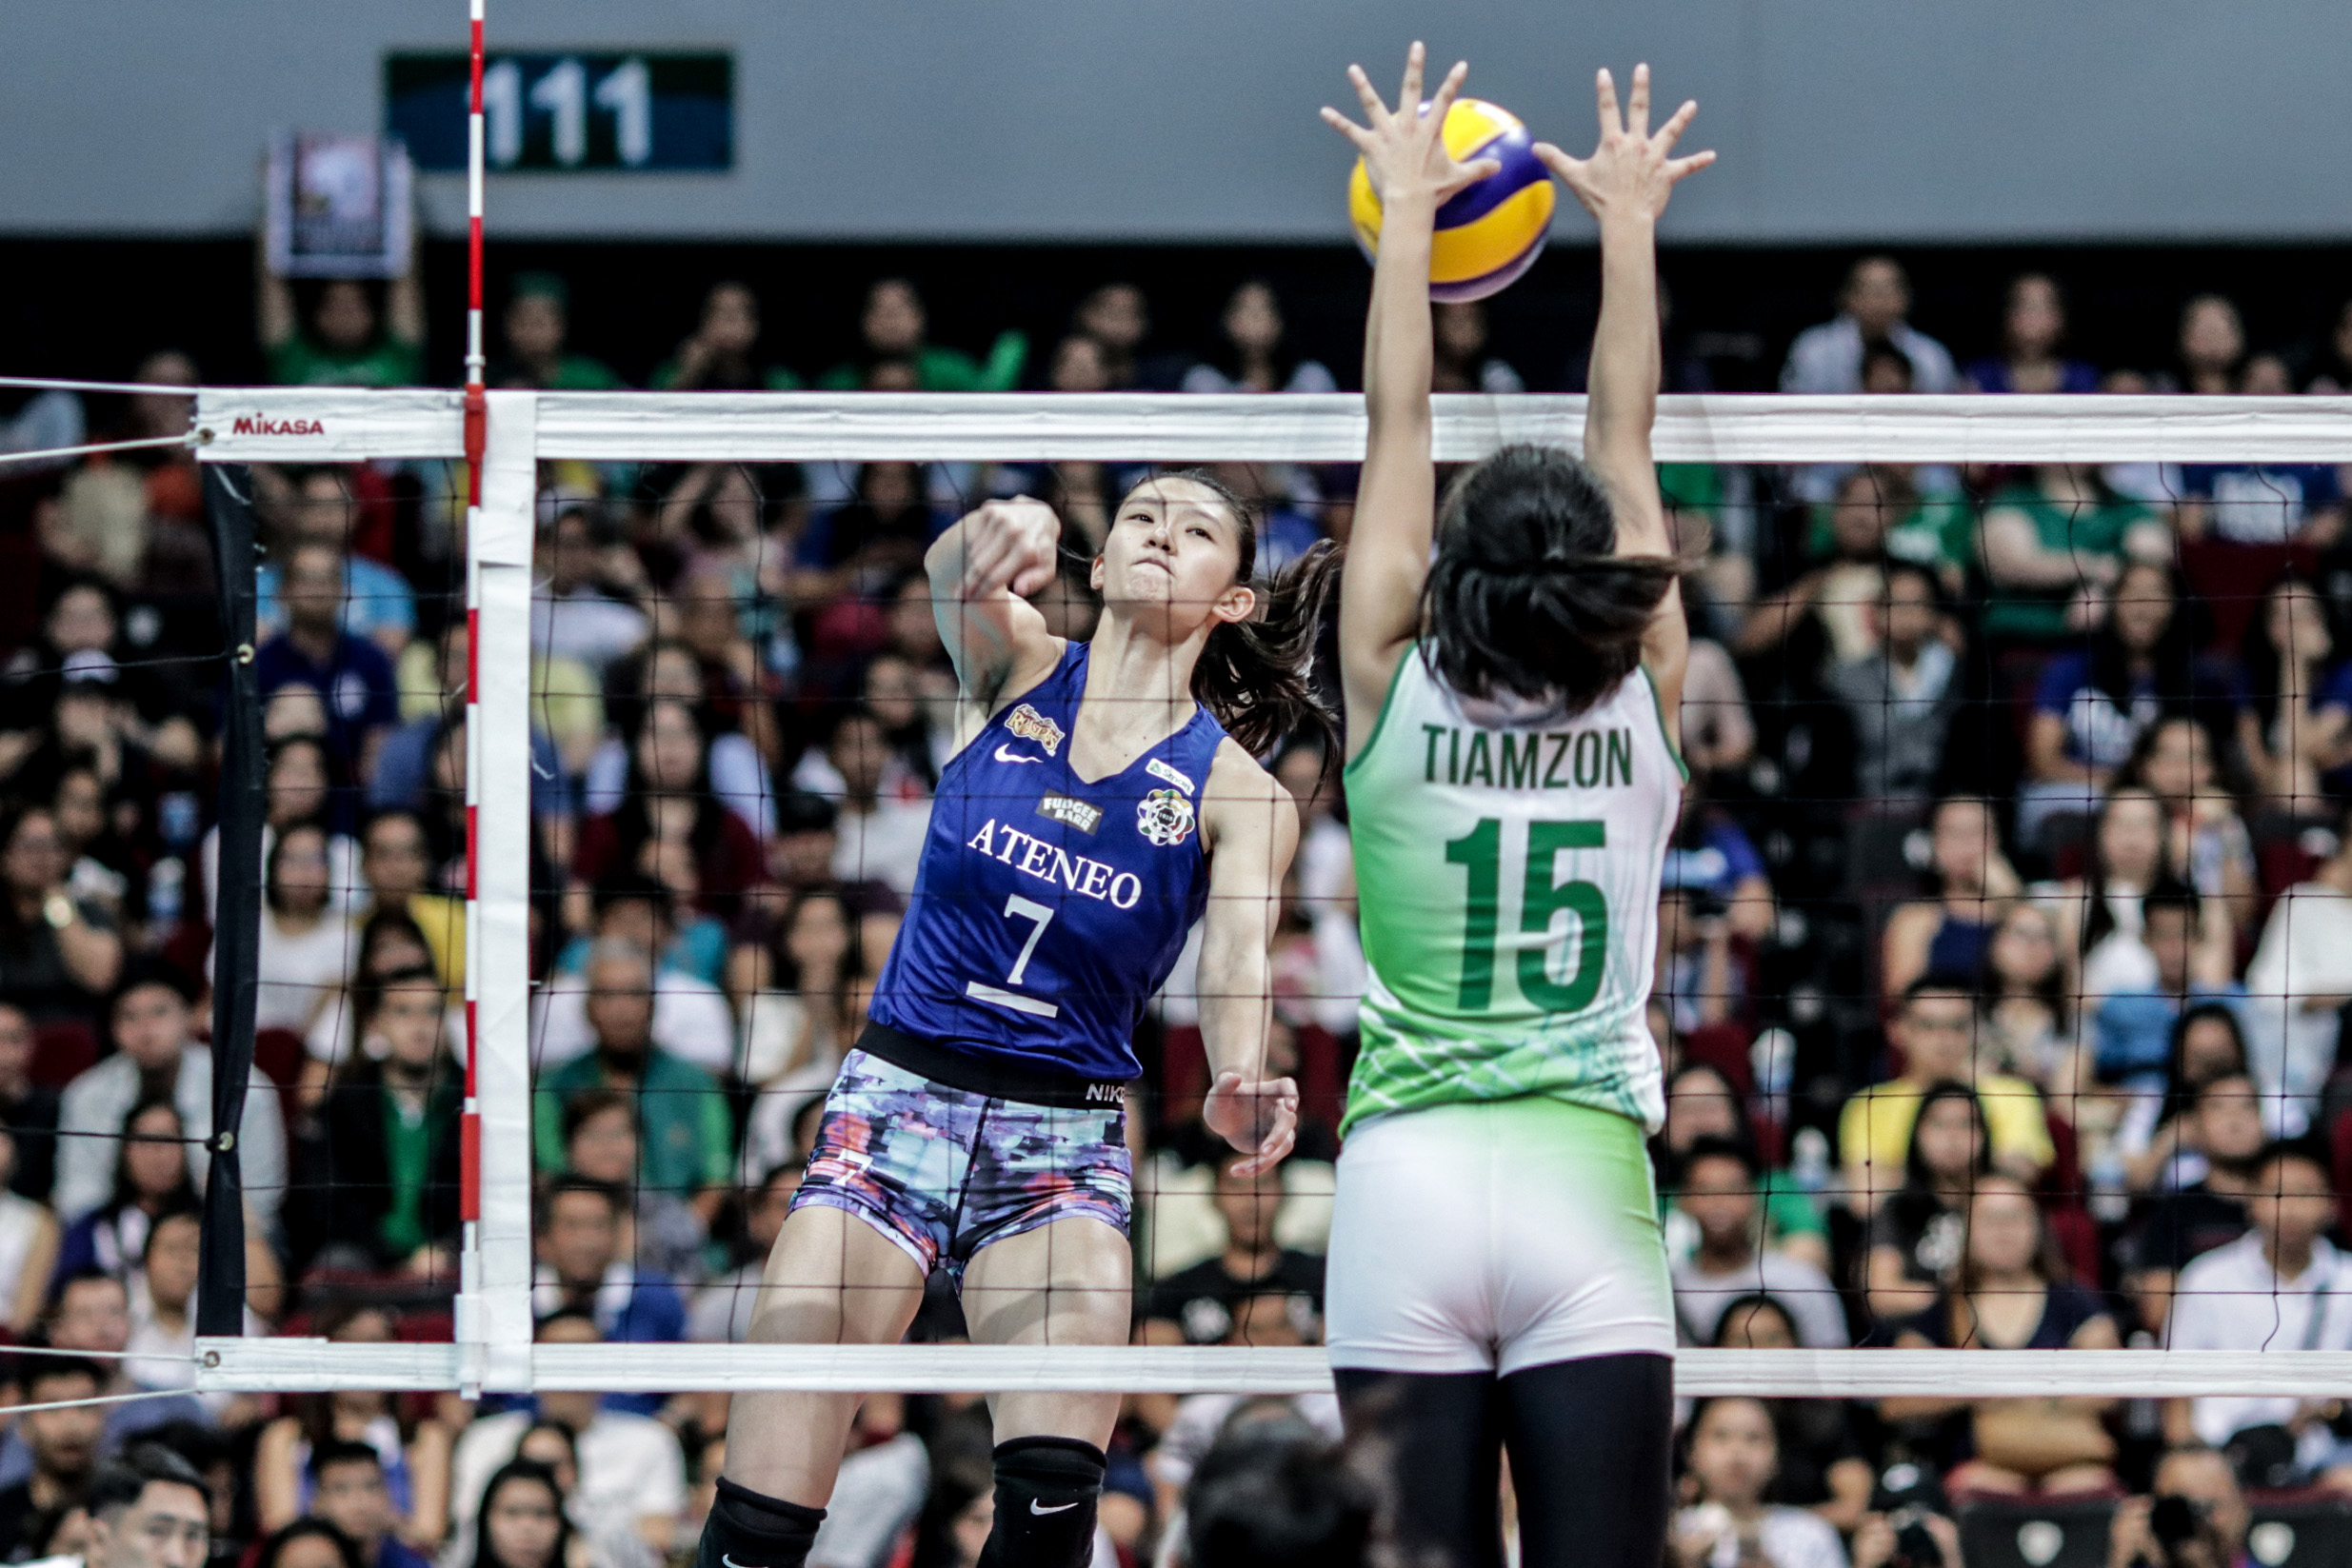 Fast Facts What To Expect In The Uaap Season 81 Volleyball Openers